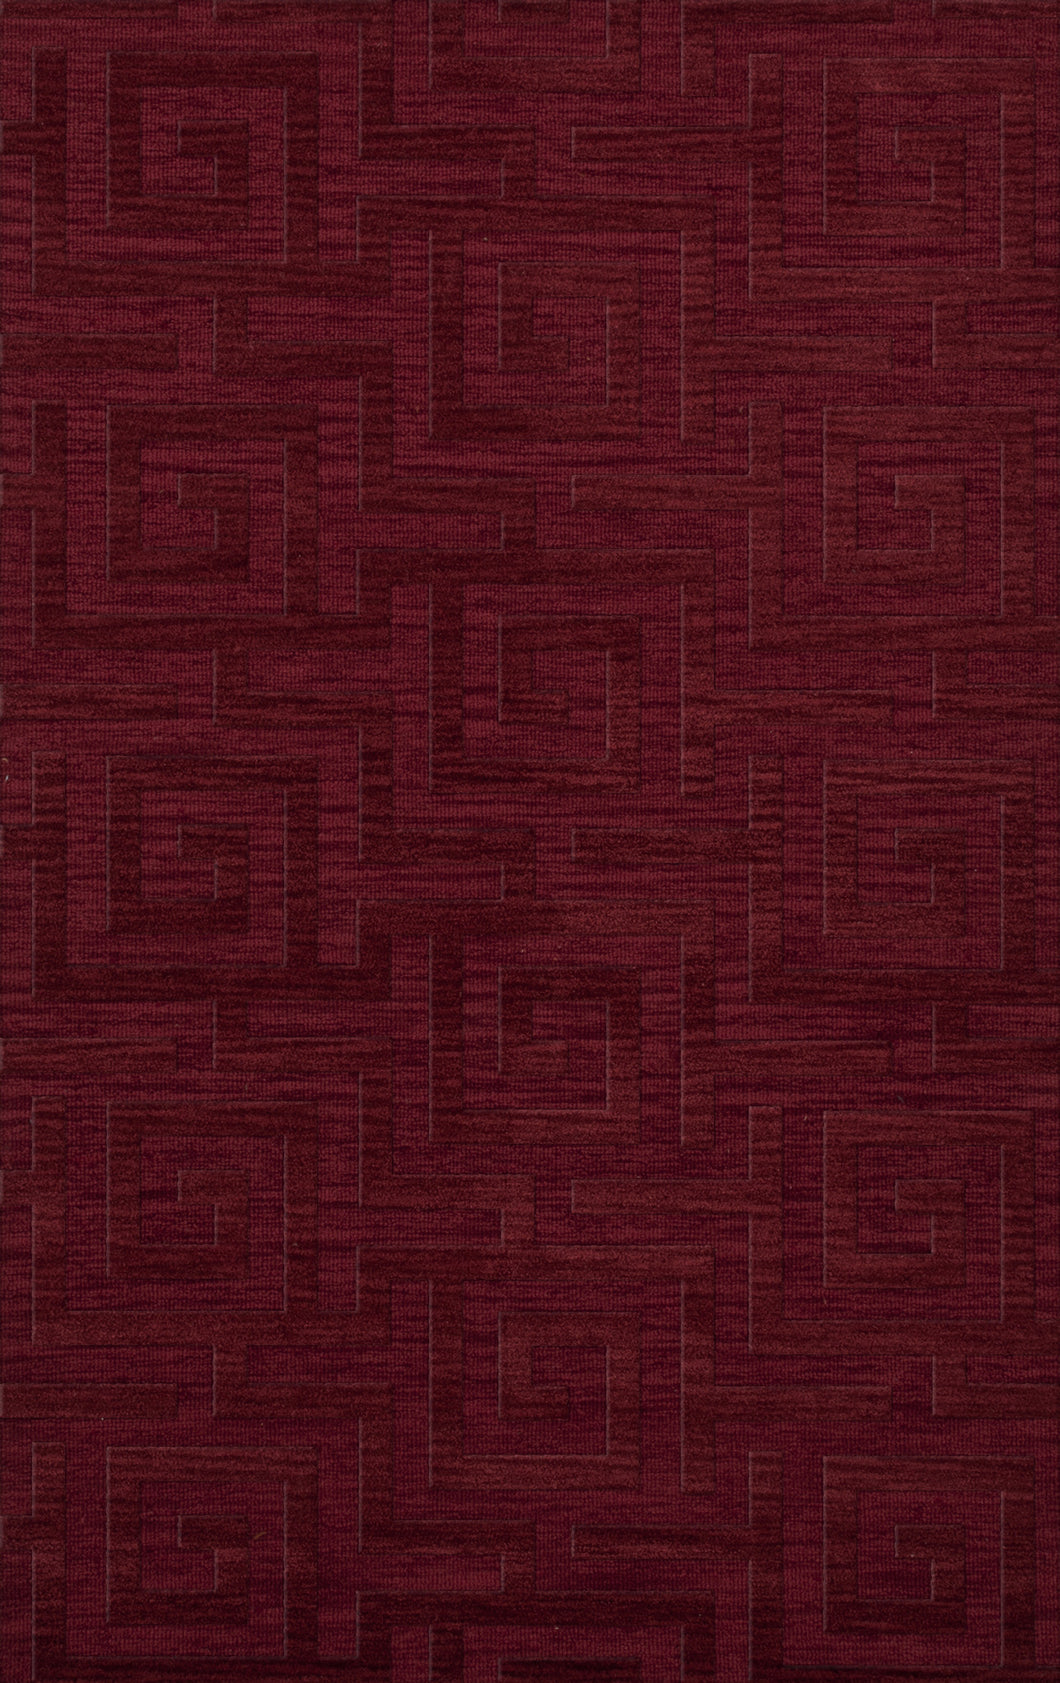 Dalyn Dover Rich Red Dv13 Area Rug